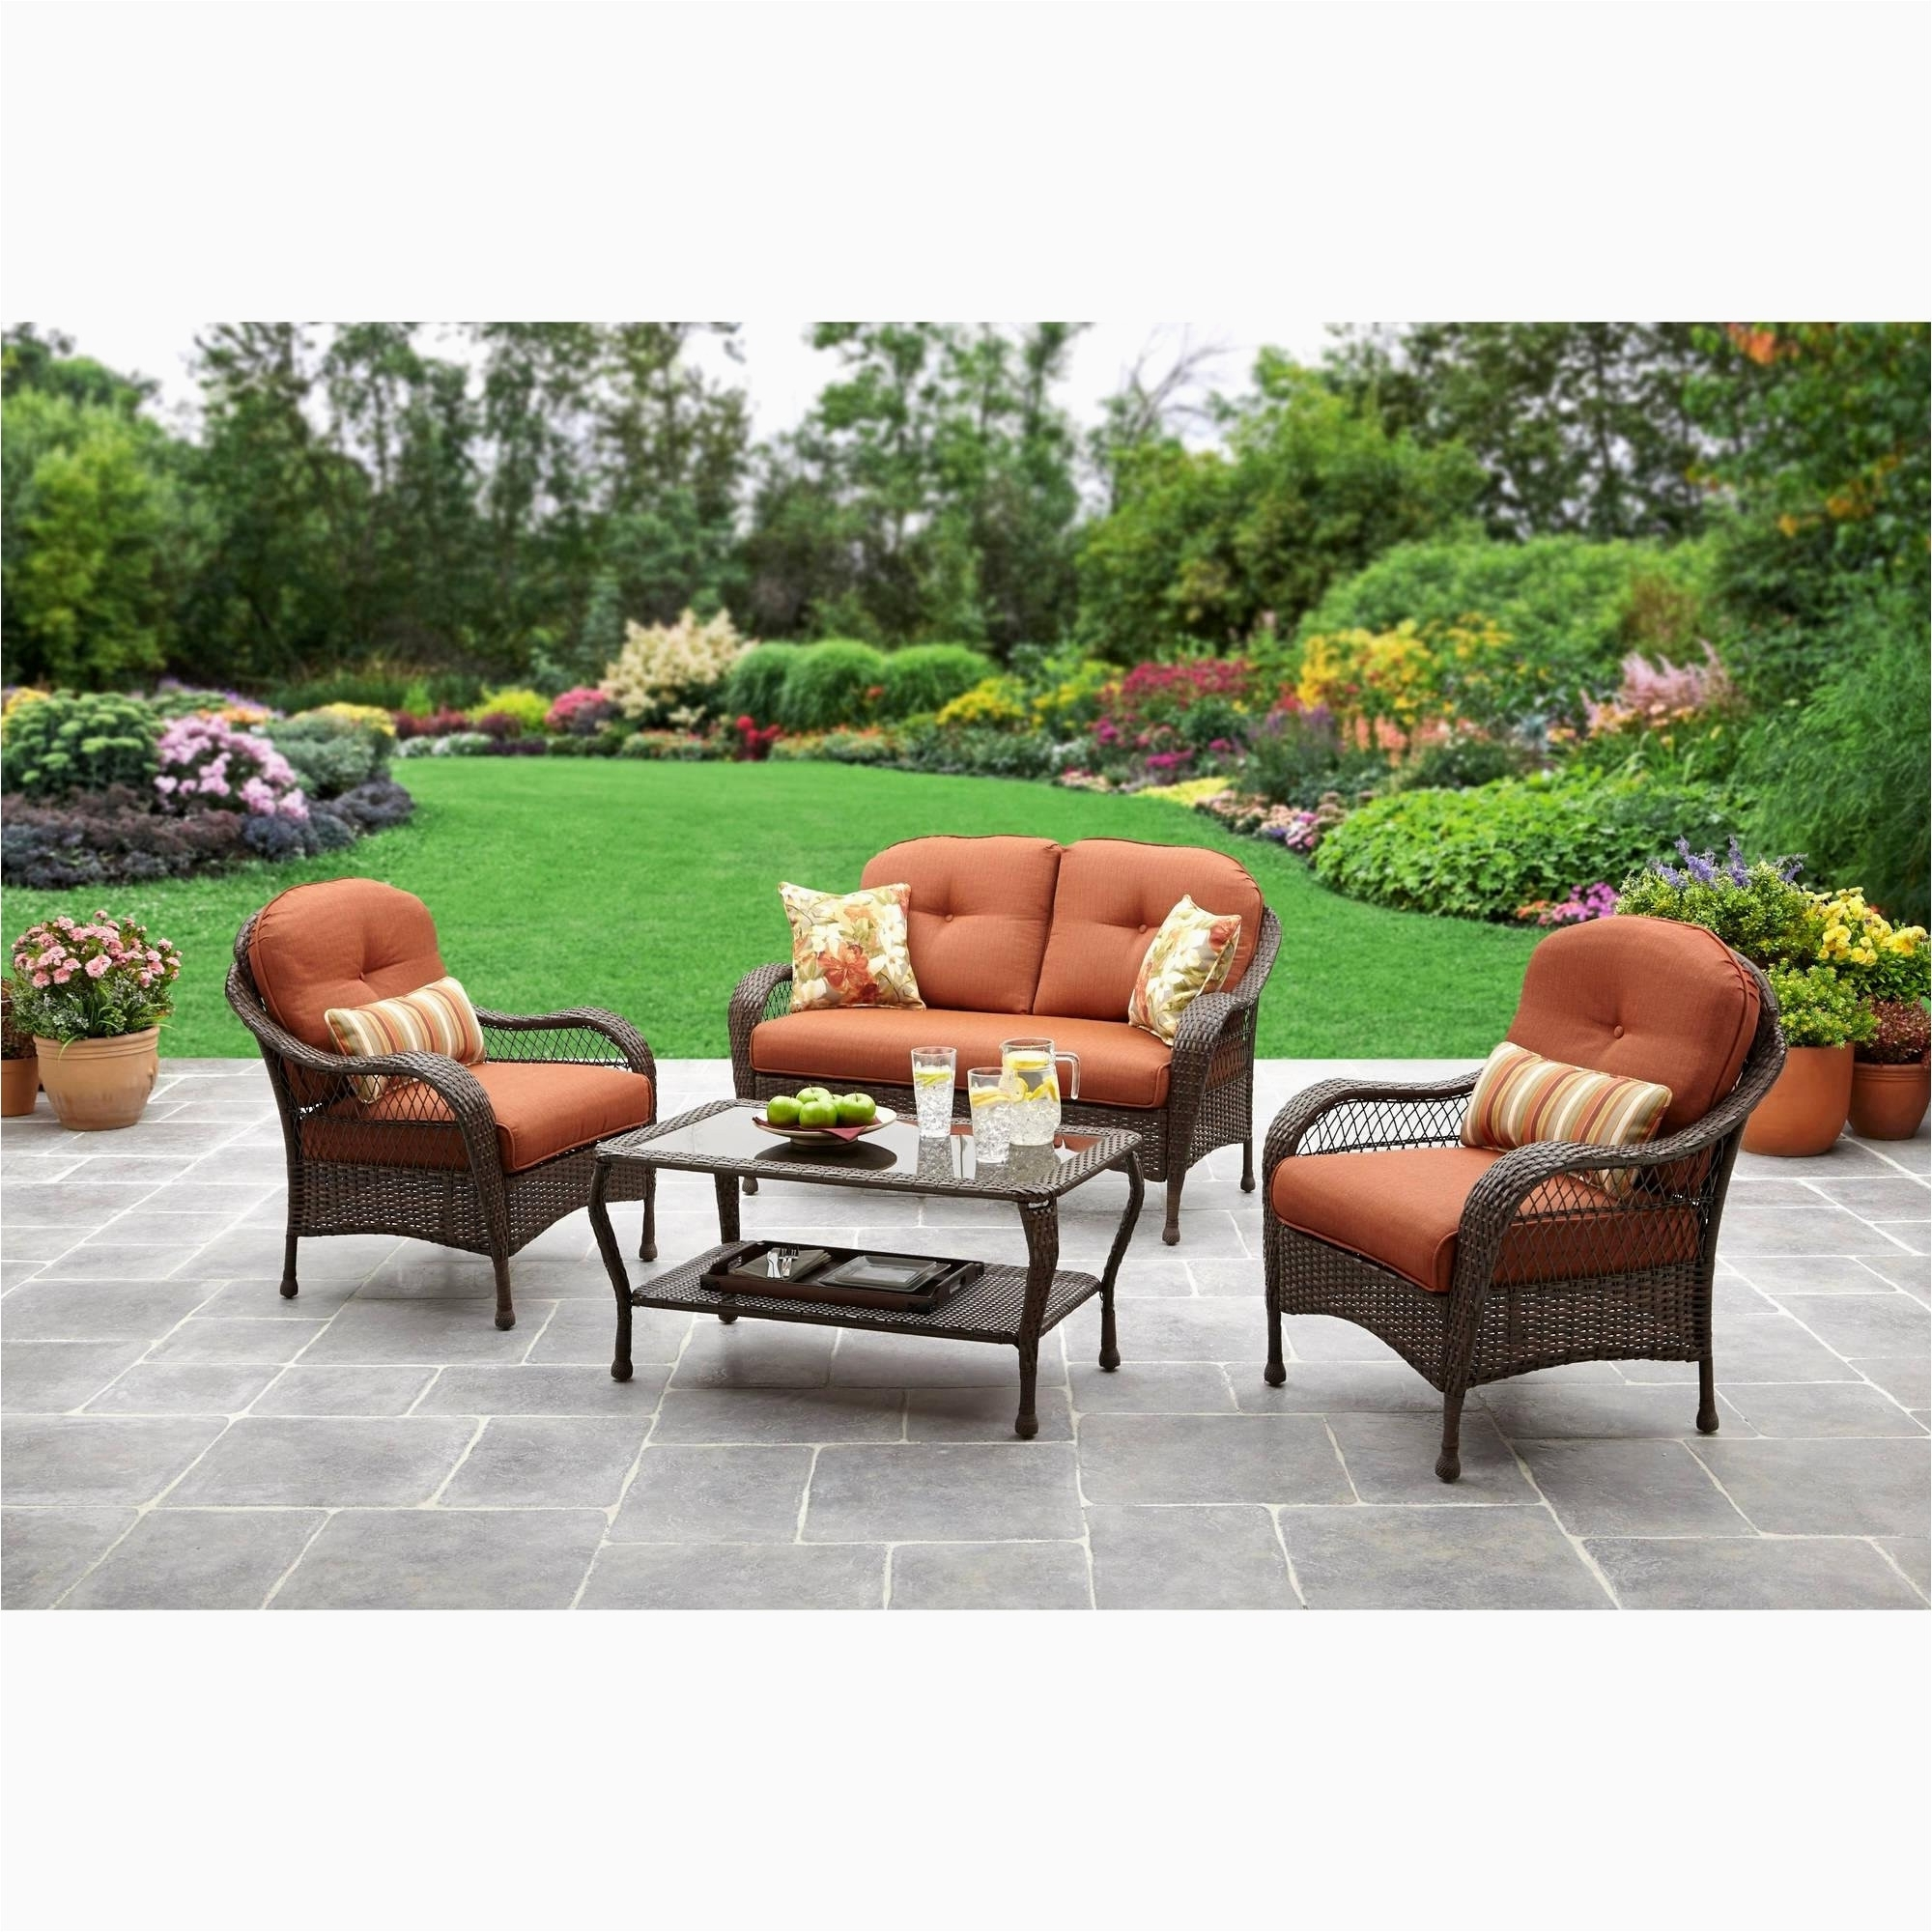 Trendy Lowes Patio Furniture Conversation Sets Within Lowes Patio Stones Tags : Patio Furniture Conversation Set Outdoor (View 3 of 15)